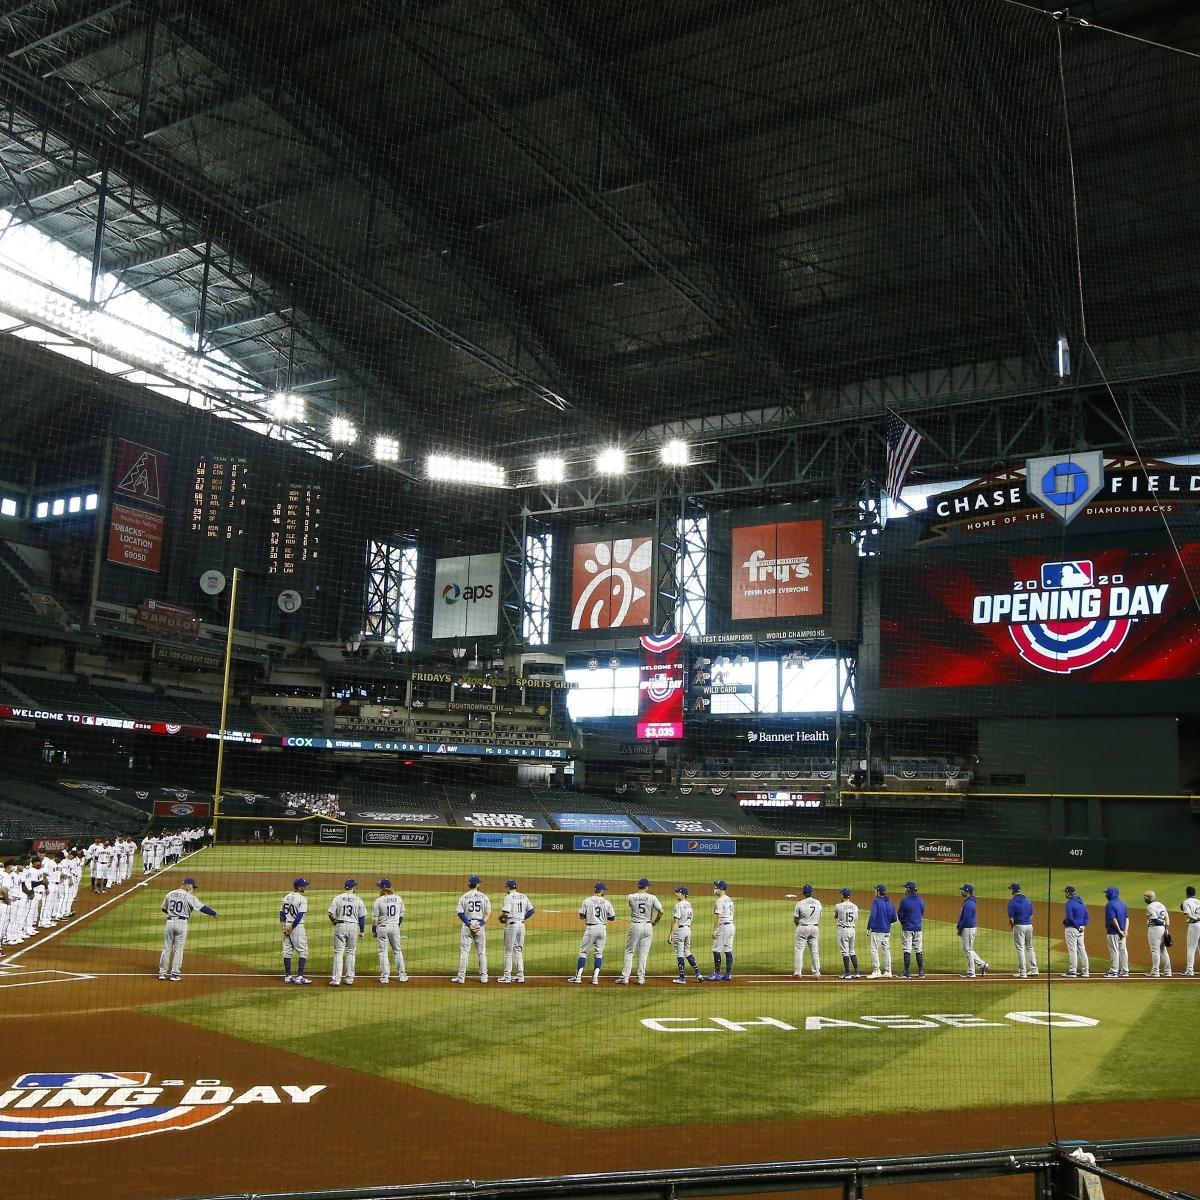 MLBPA Rejects MLB's 154-Game Proposal, Plans to Start 2021 Season on Time